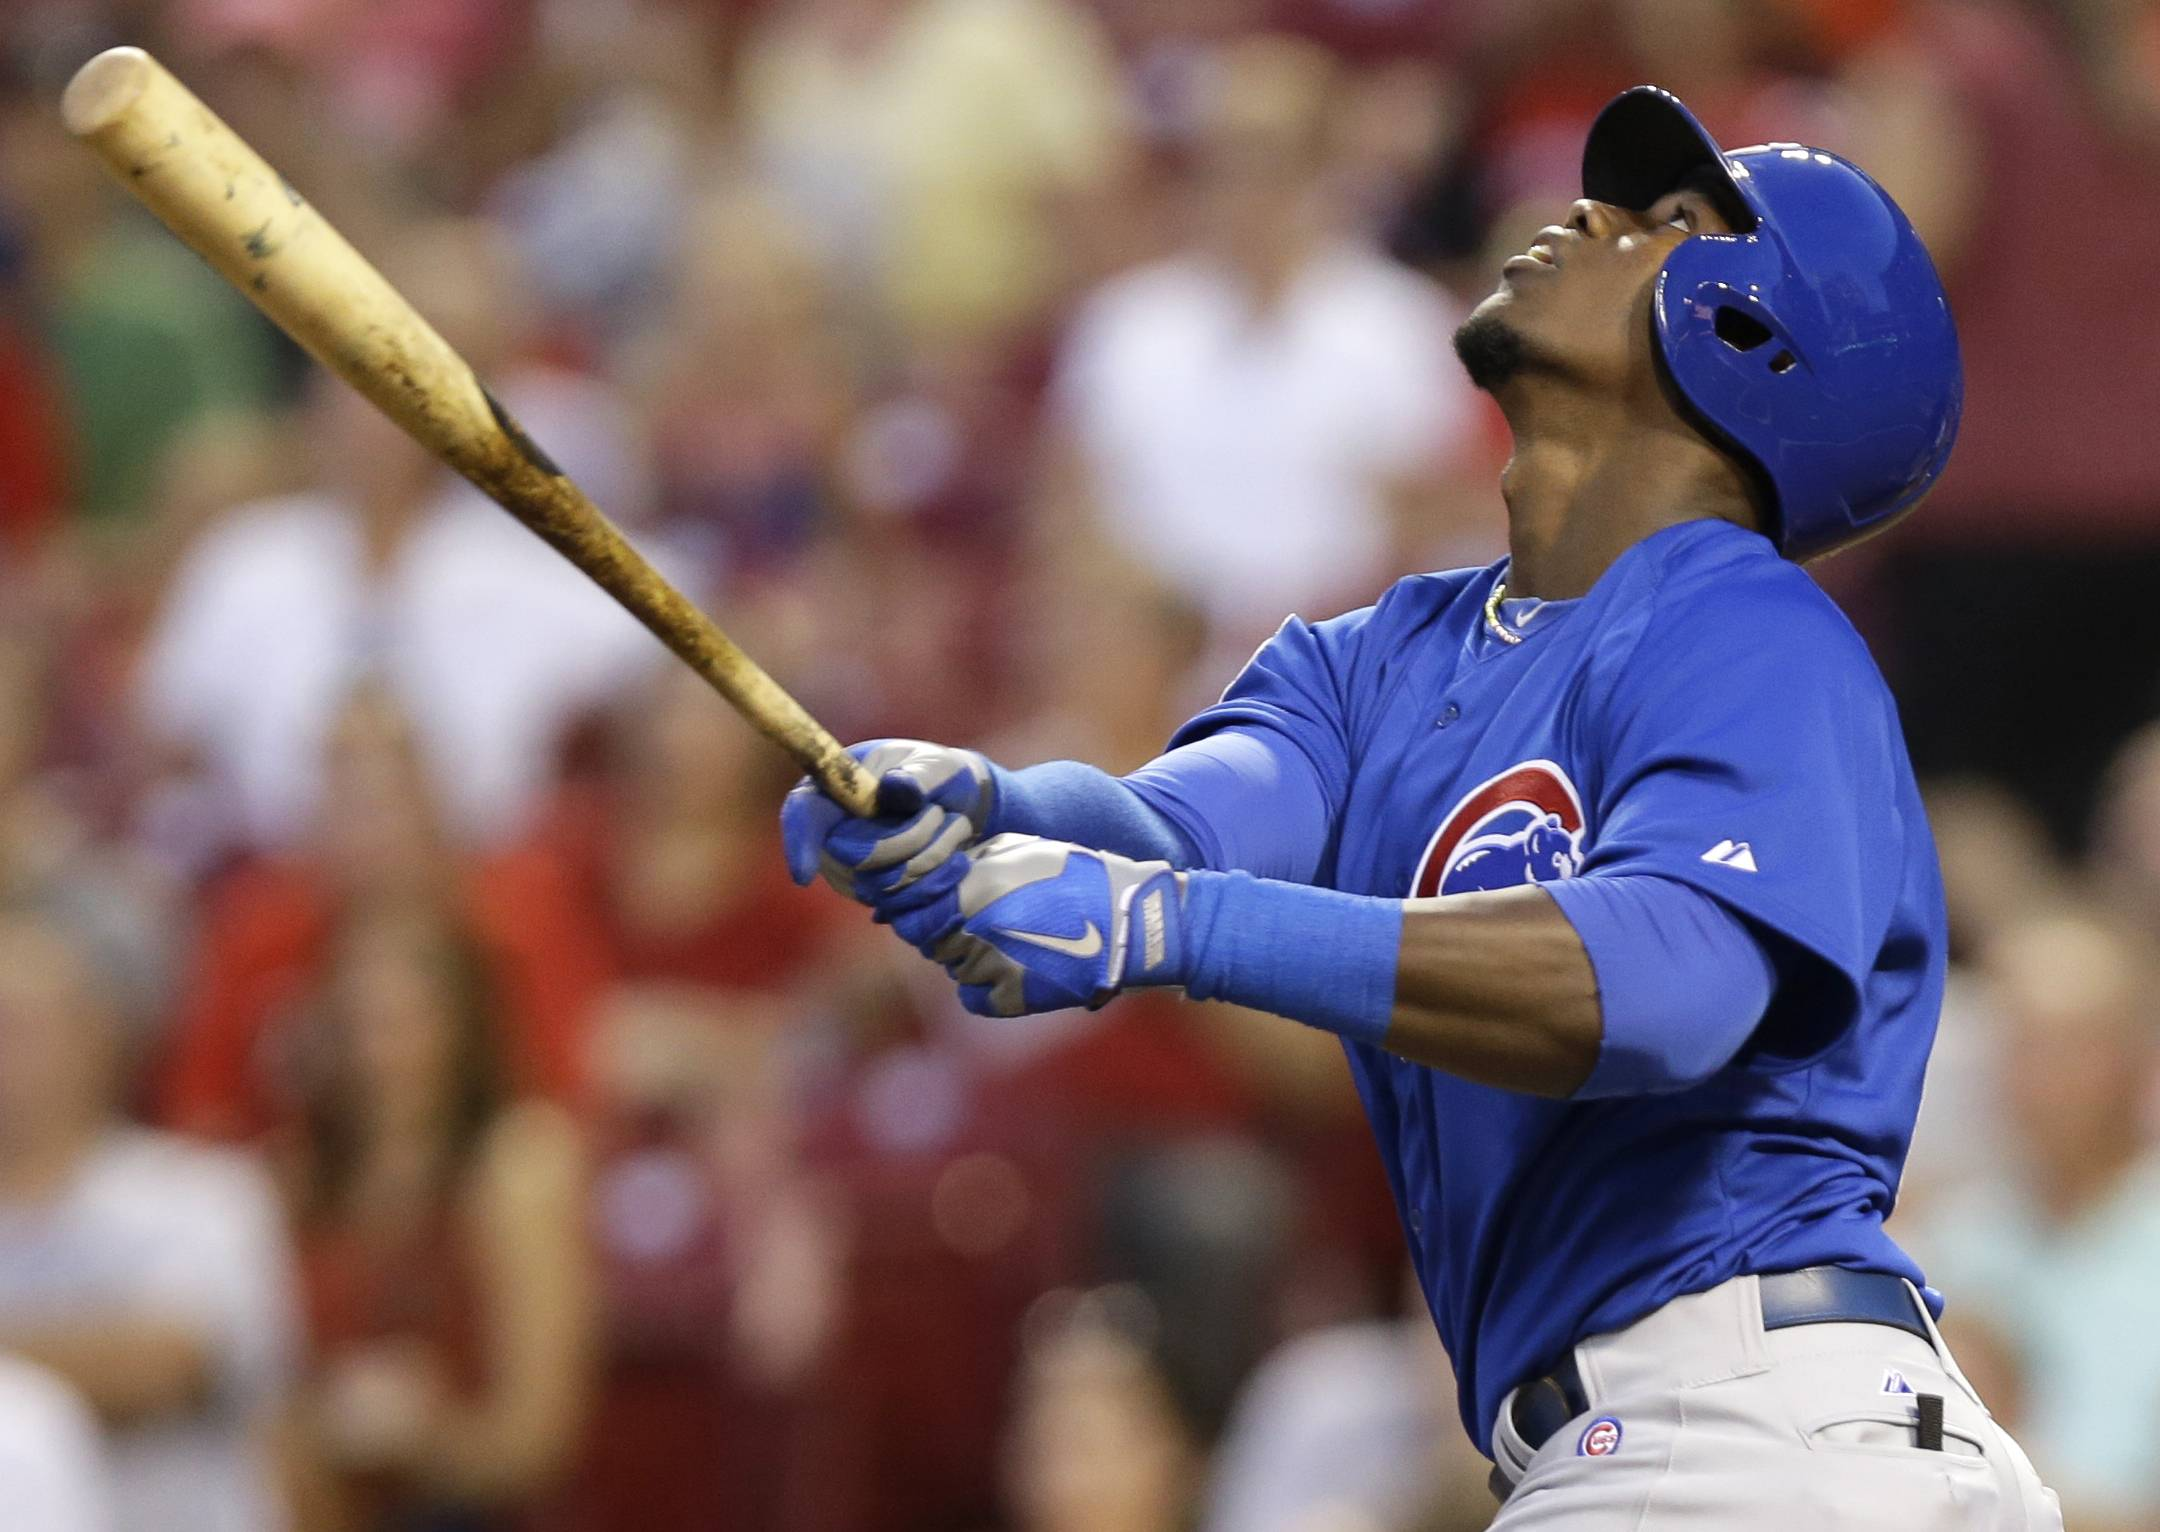 Chicago Cubs' Jorge Soler hits a pop fly for an out in the fourth inning of a baseball game against the Cincinnati Reds, Wednesday, Aug. 27, 2014, in Cincinnati. Soler was making his major league debut.